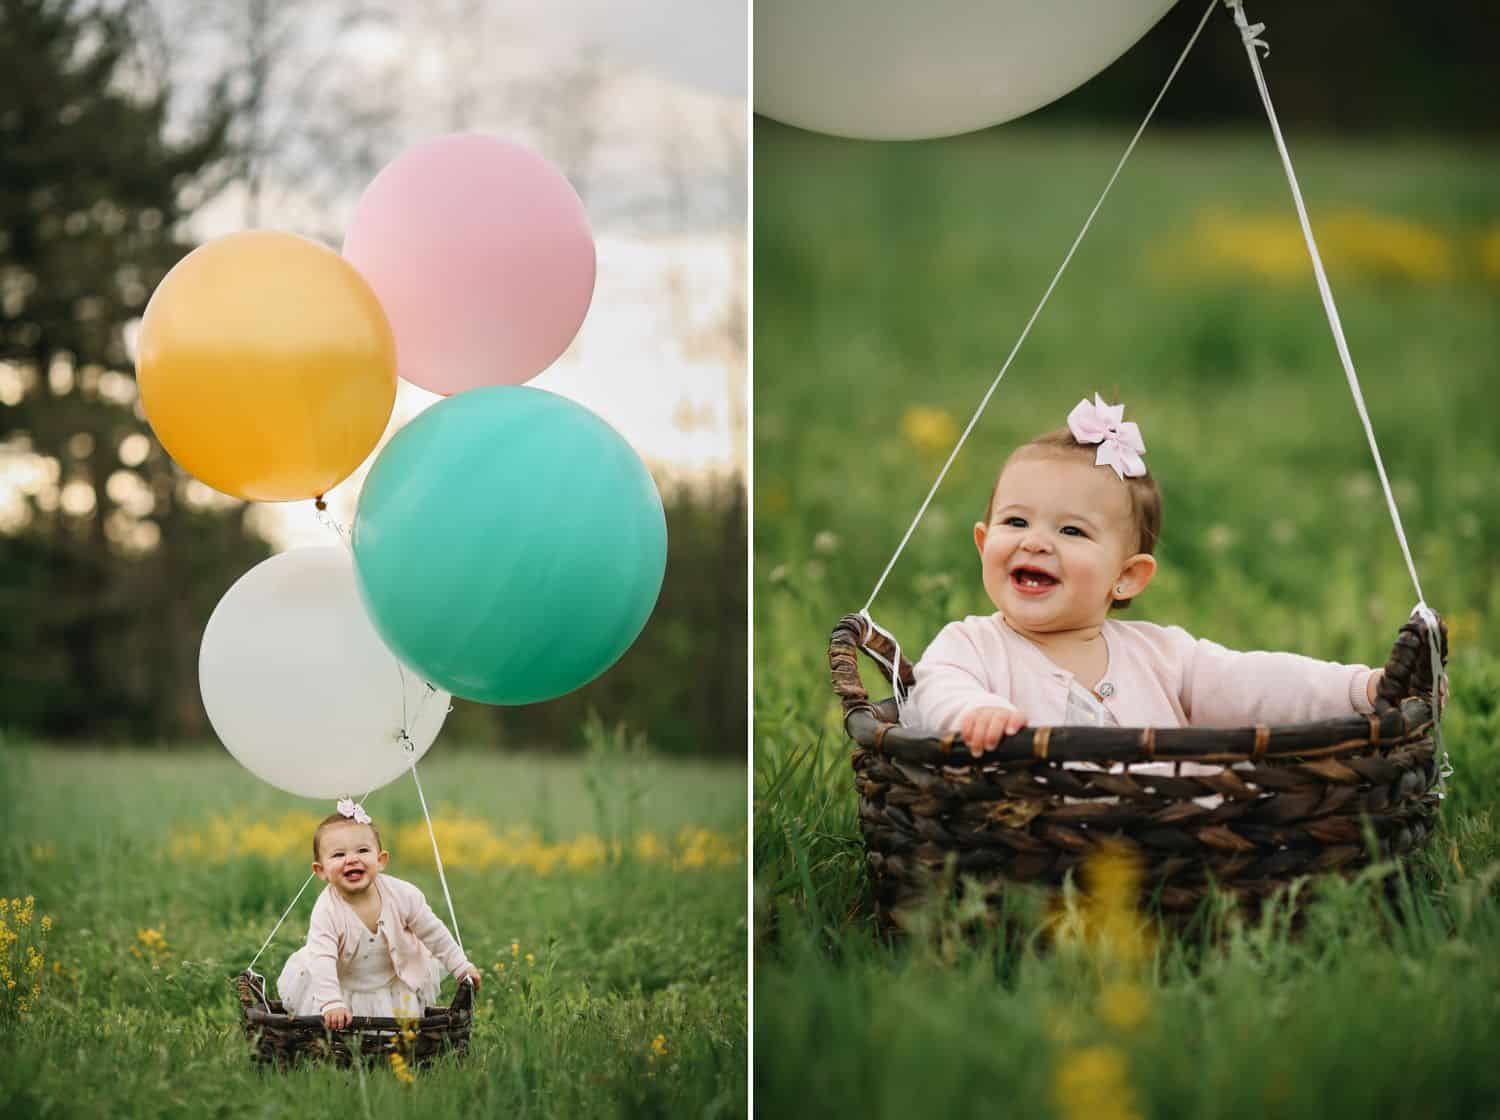 A toddler girl sits in a field in a basket surrounded by giant balloons